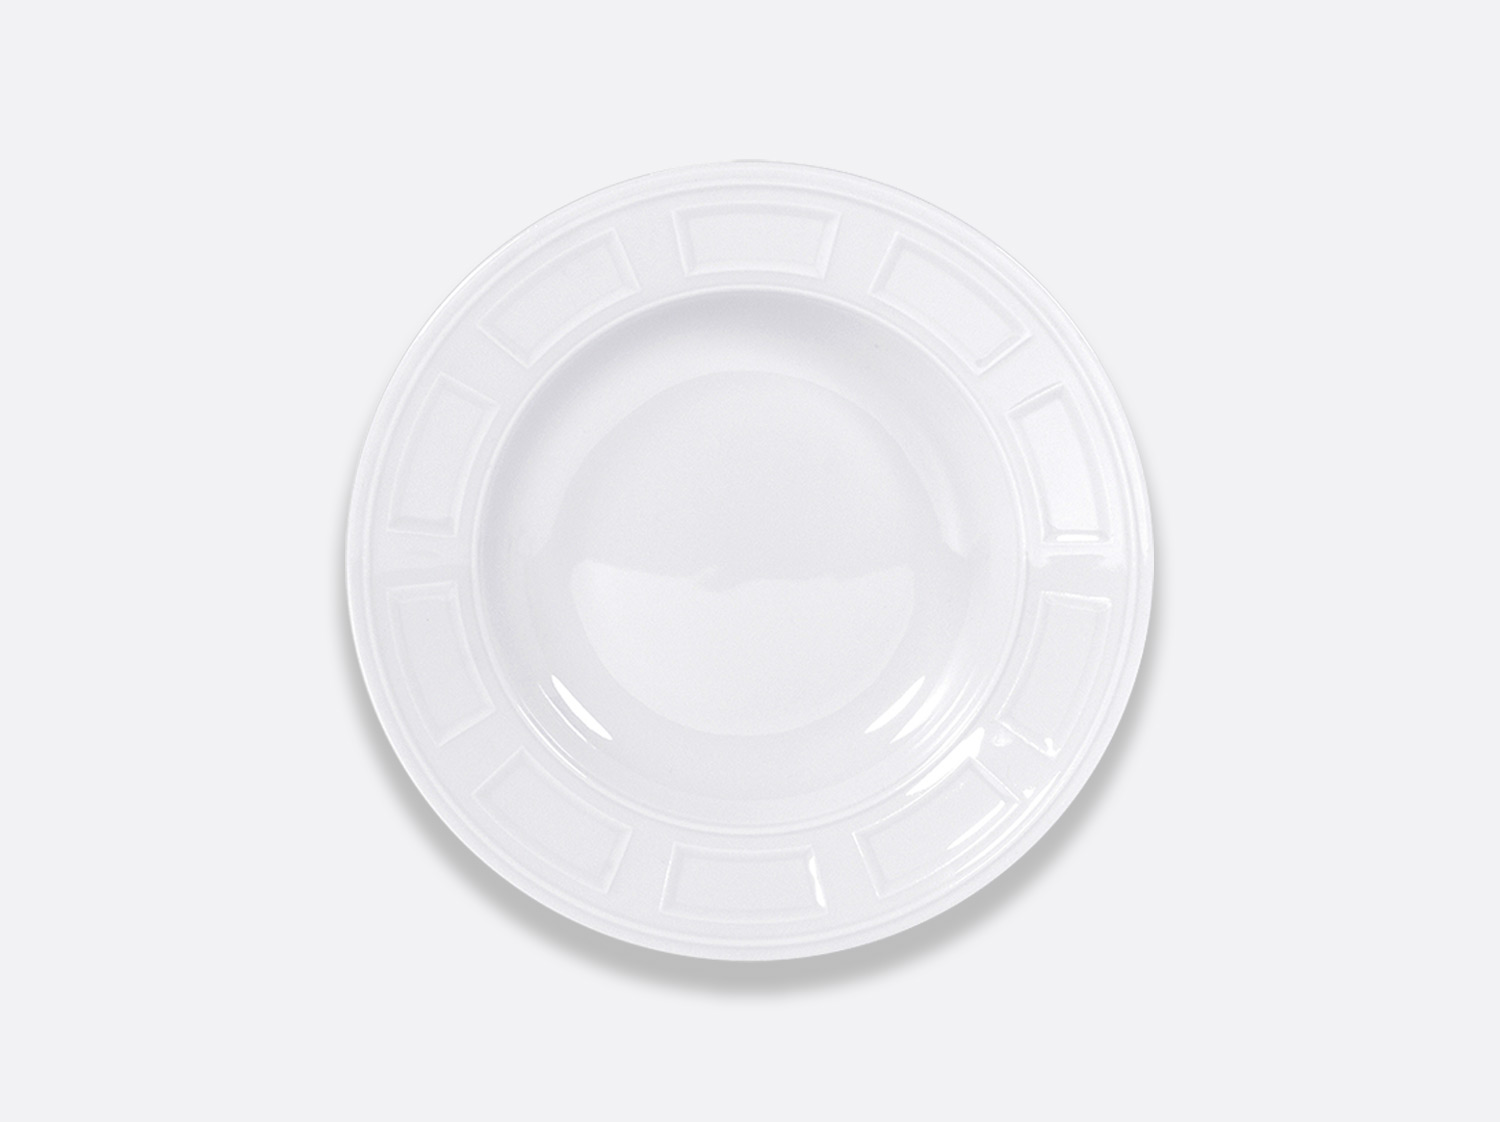 Assiette creuse à aile 22,5 cm en porcelaine de la collection Naxos Bernardaud